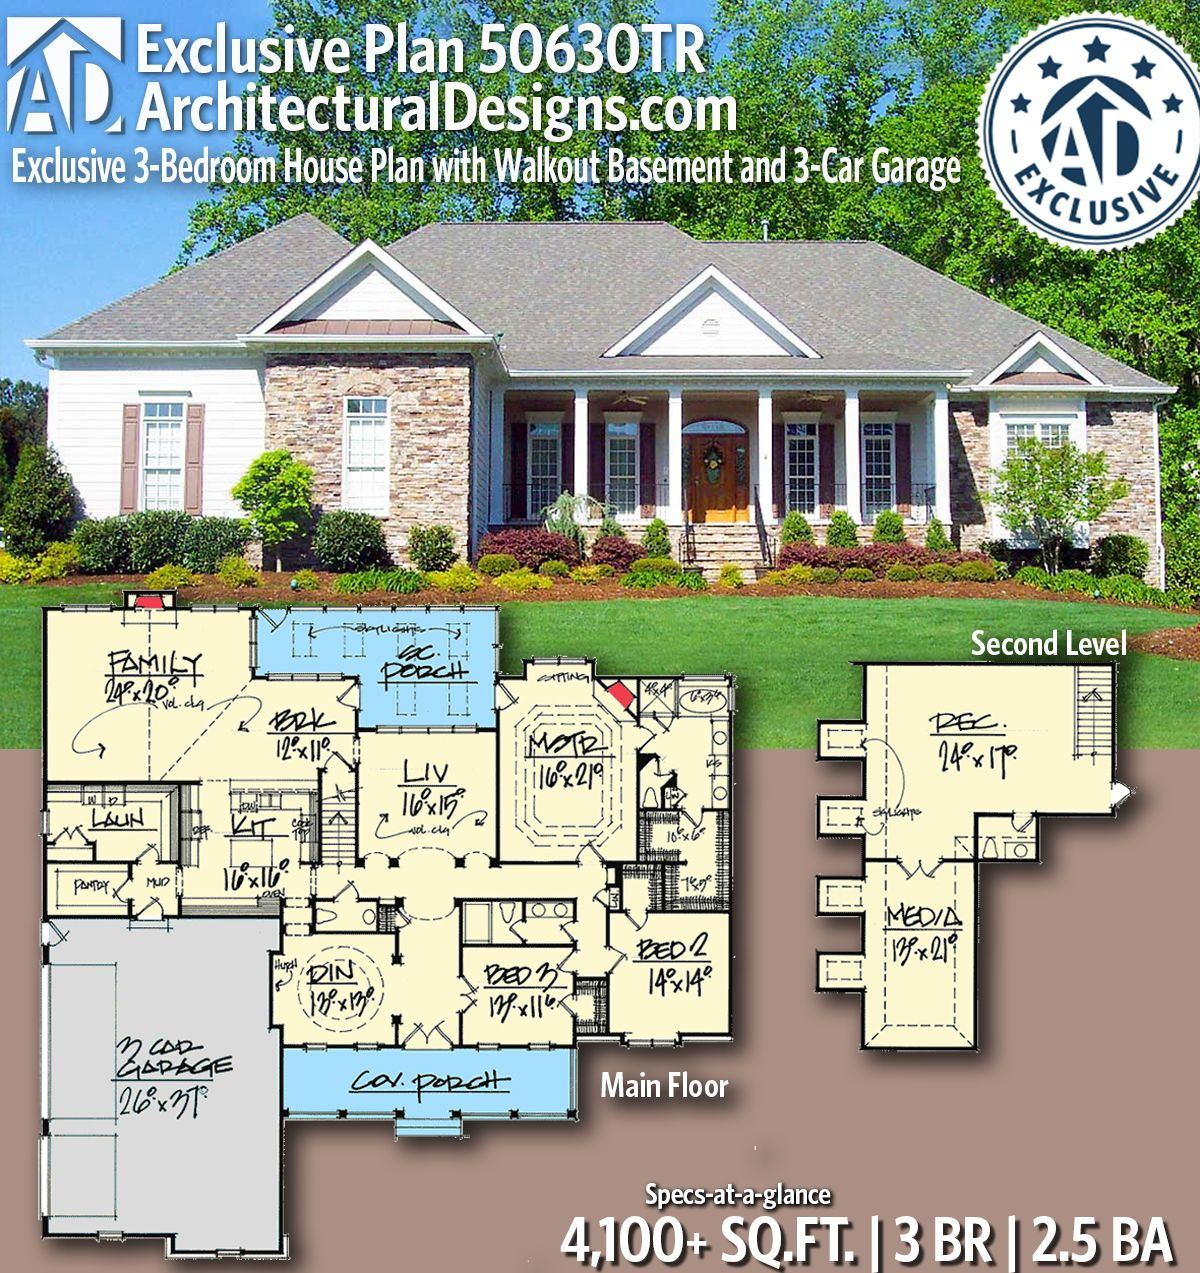 Plan 50630tr Exclusive 3 Bedroom House Plan With Walkout Basement And 3 Car Garage Exclusive House Plan House Plans Bedroom House Plans